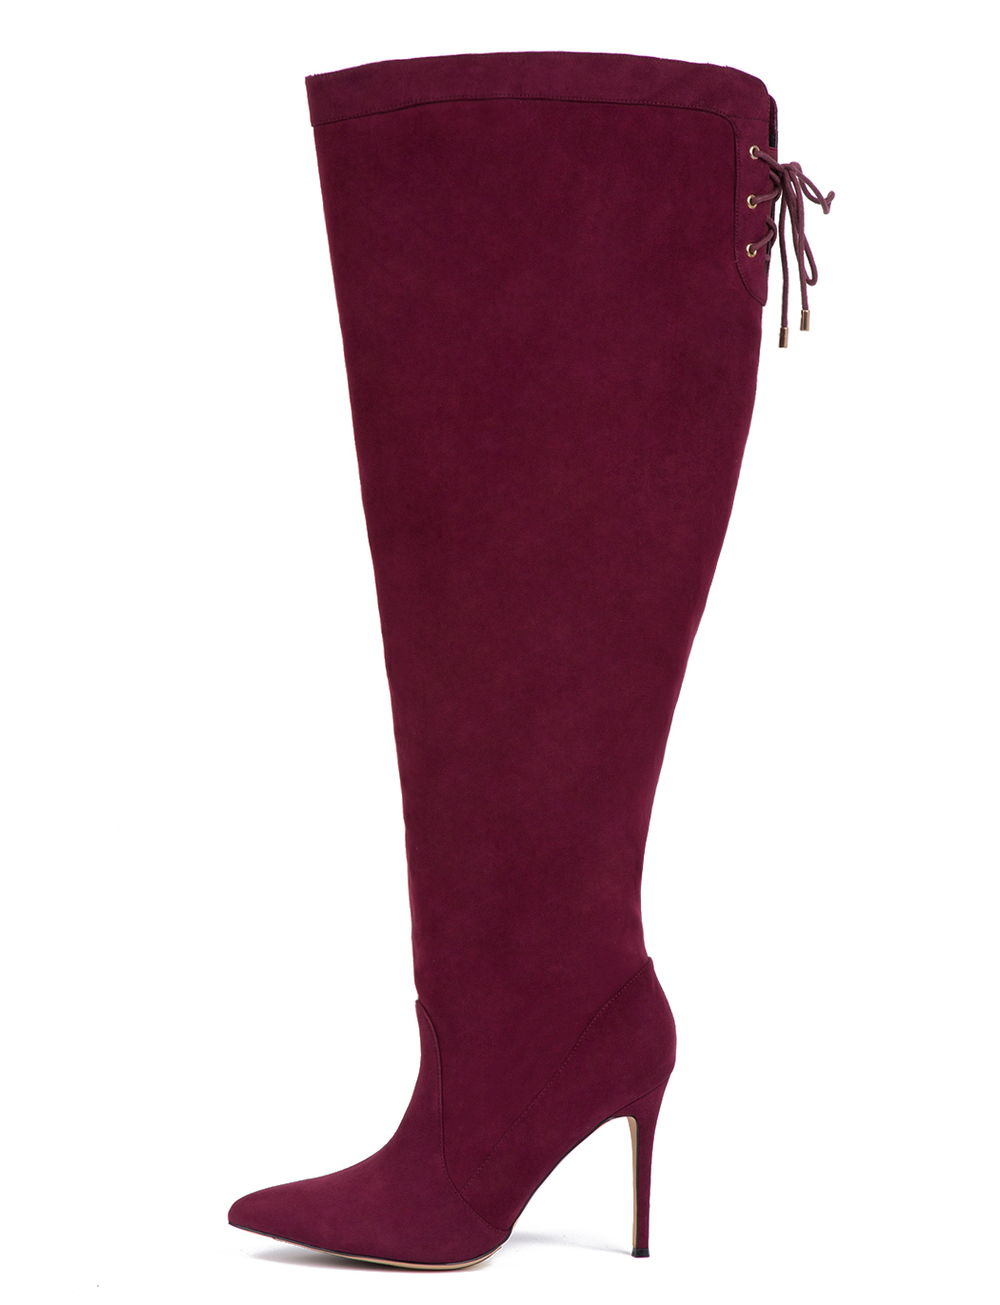 Luella Over-The-Knee-Boot. Eloquii.com. Also comes in Black. $149.90